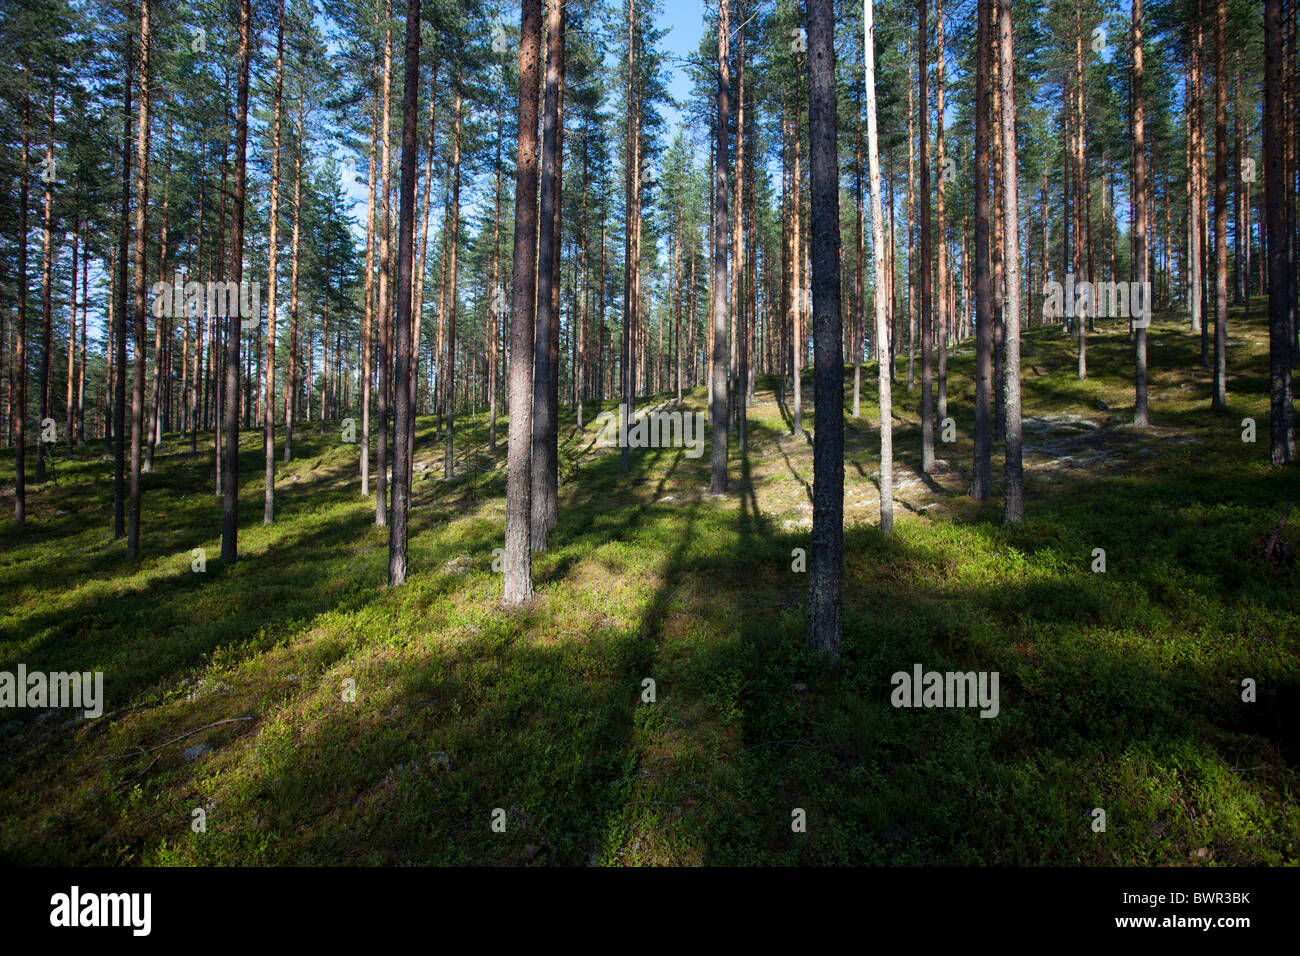 Pine ( pinus sylvestris ) forest growing at dry glacial esker , Finland - Stock Image